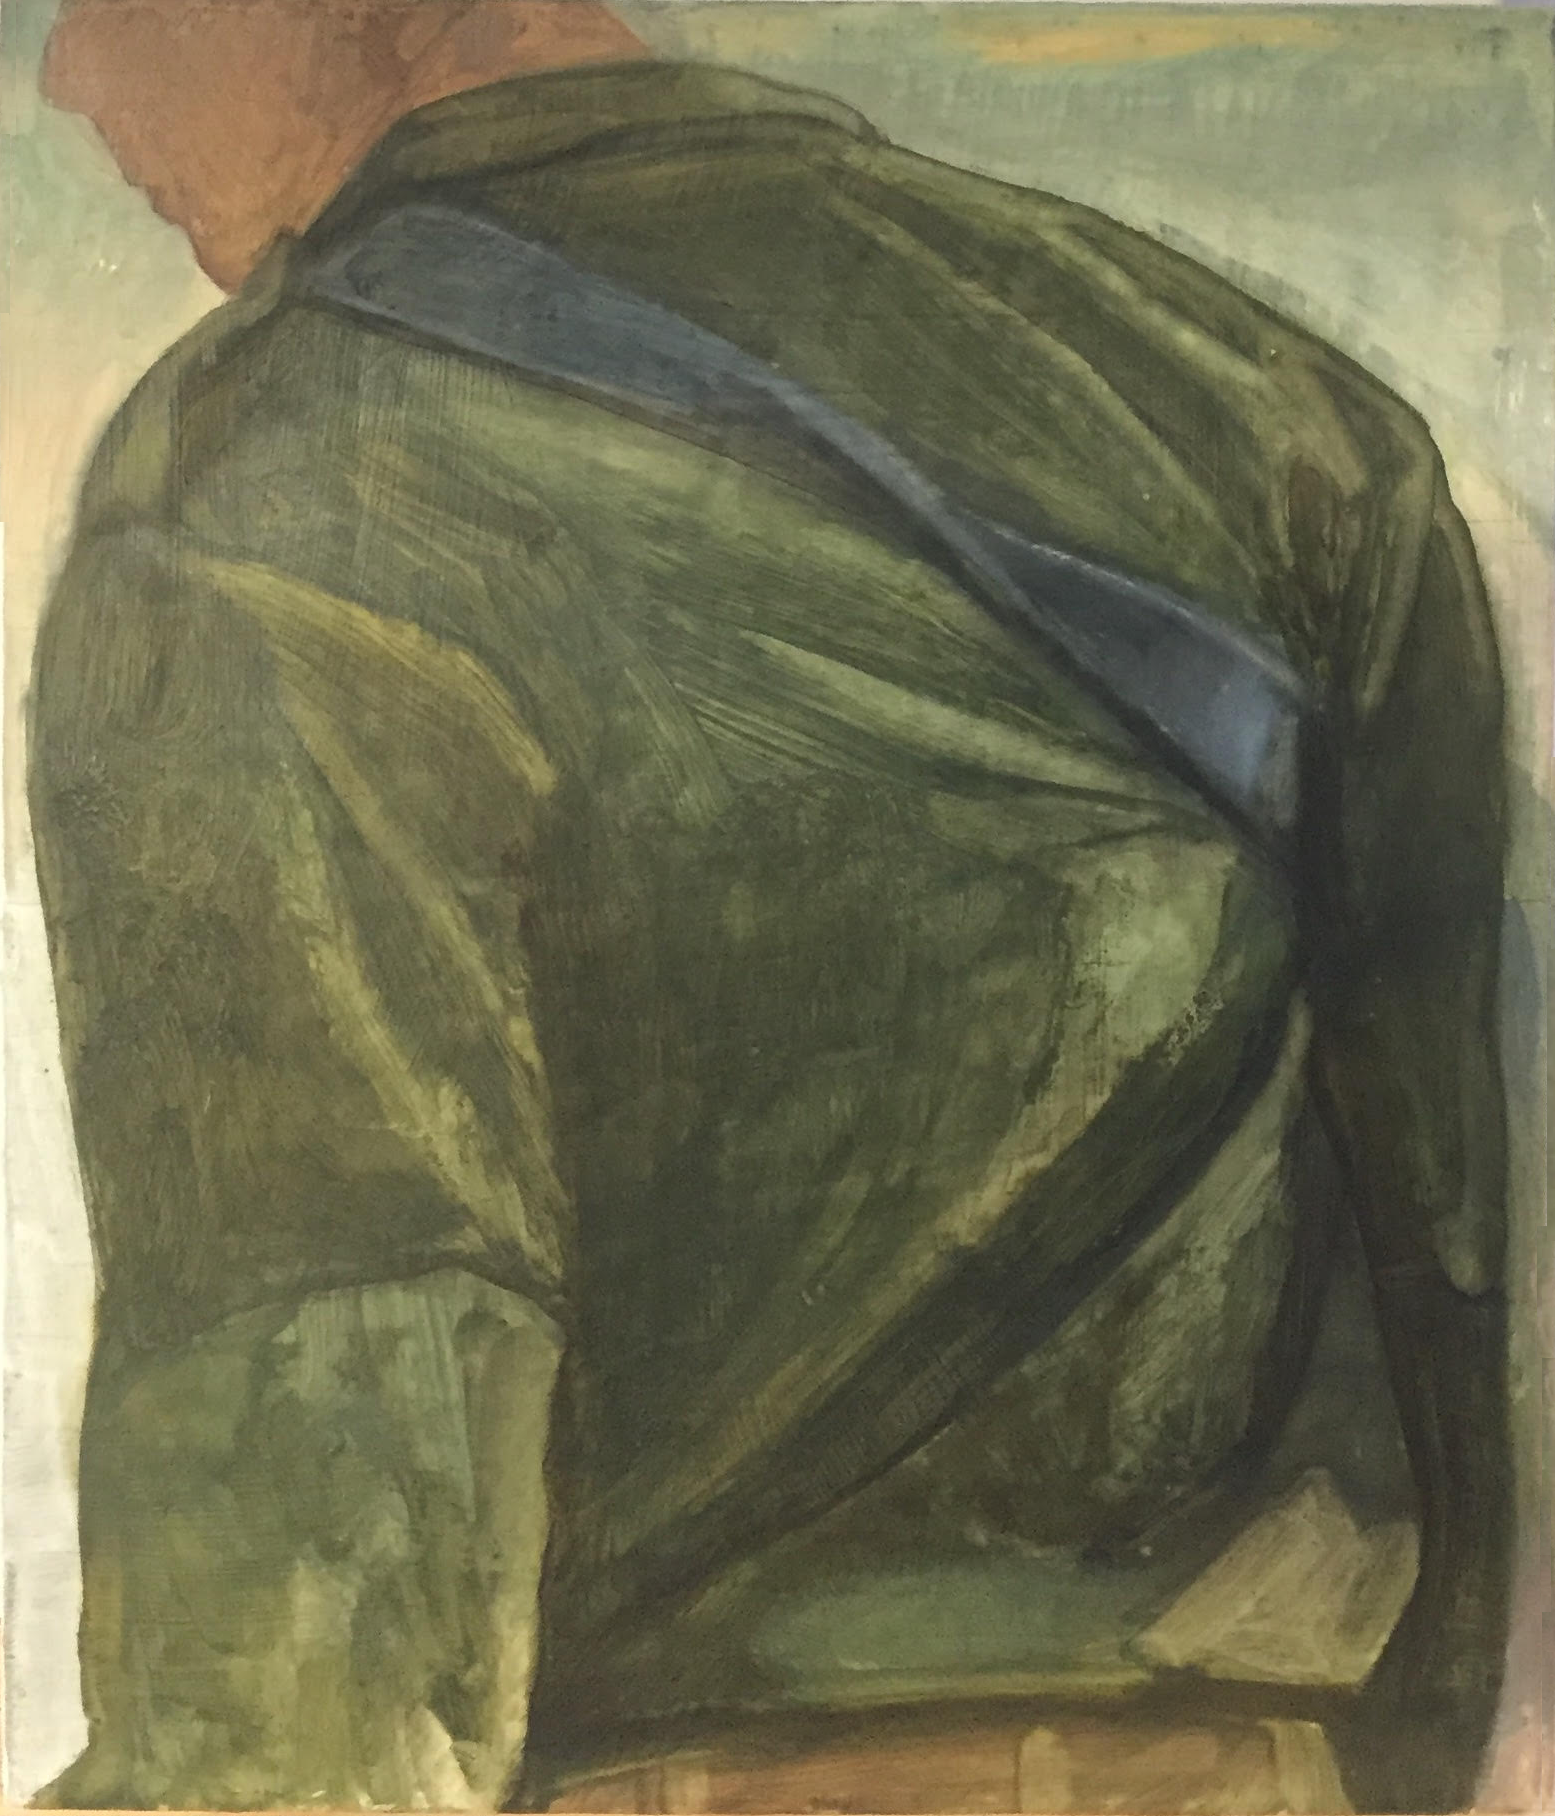 Soldier, 2018, 34 x 38 cm, oil on wood